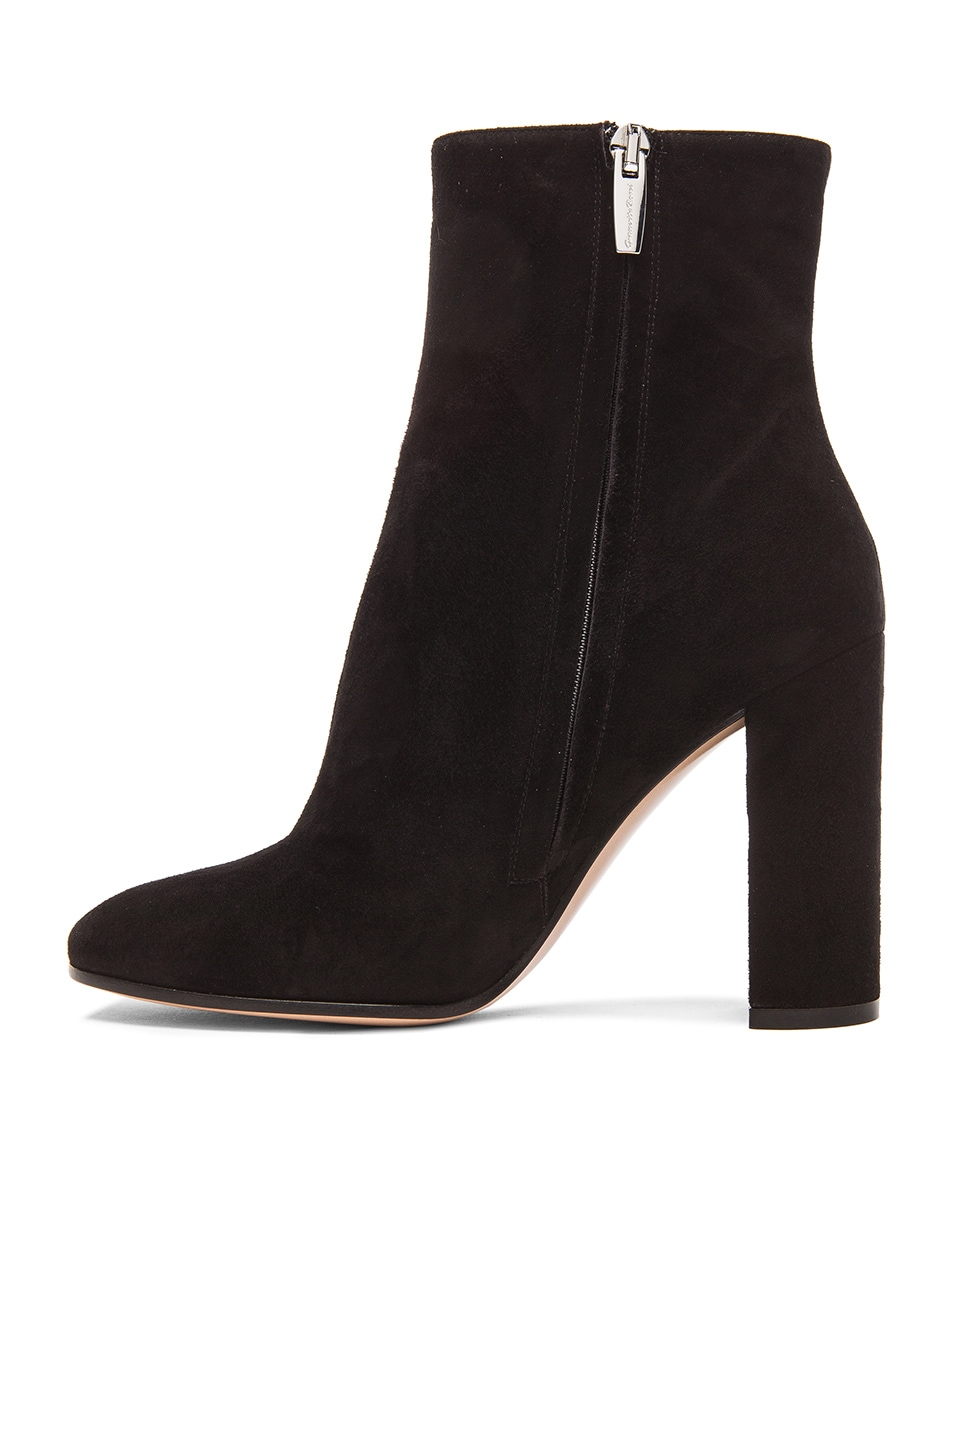 Image 5 of Gianvito Rossi Suede Booties in Black